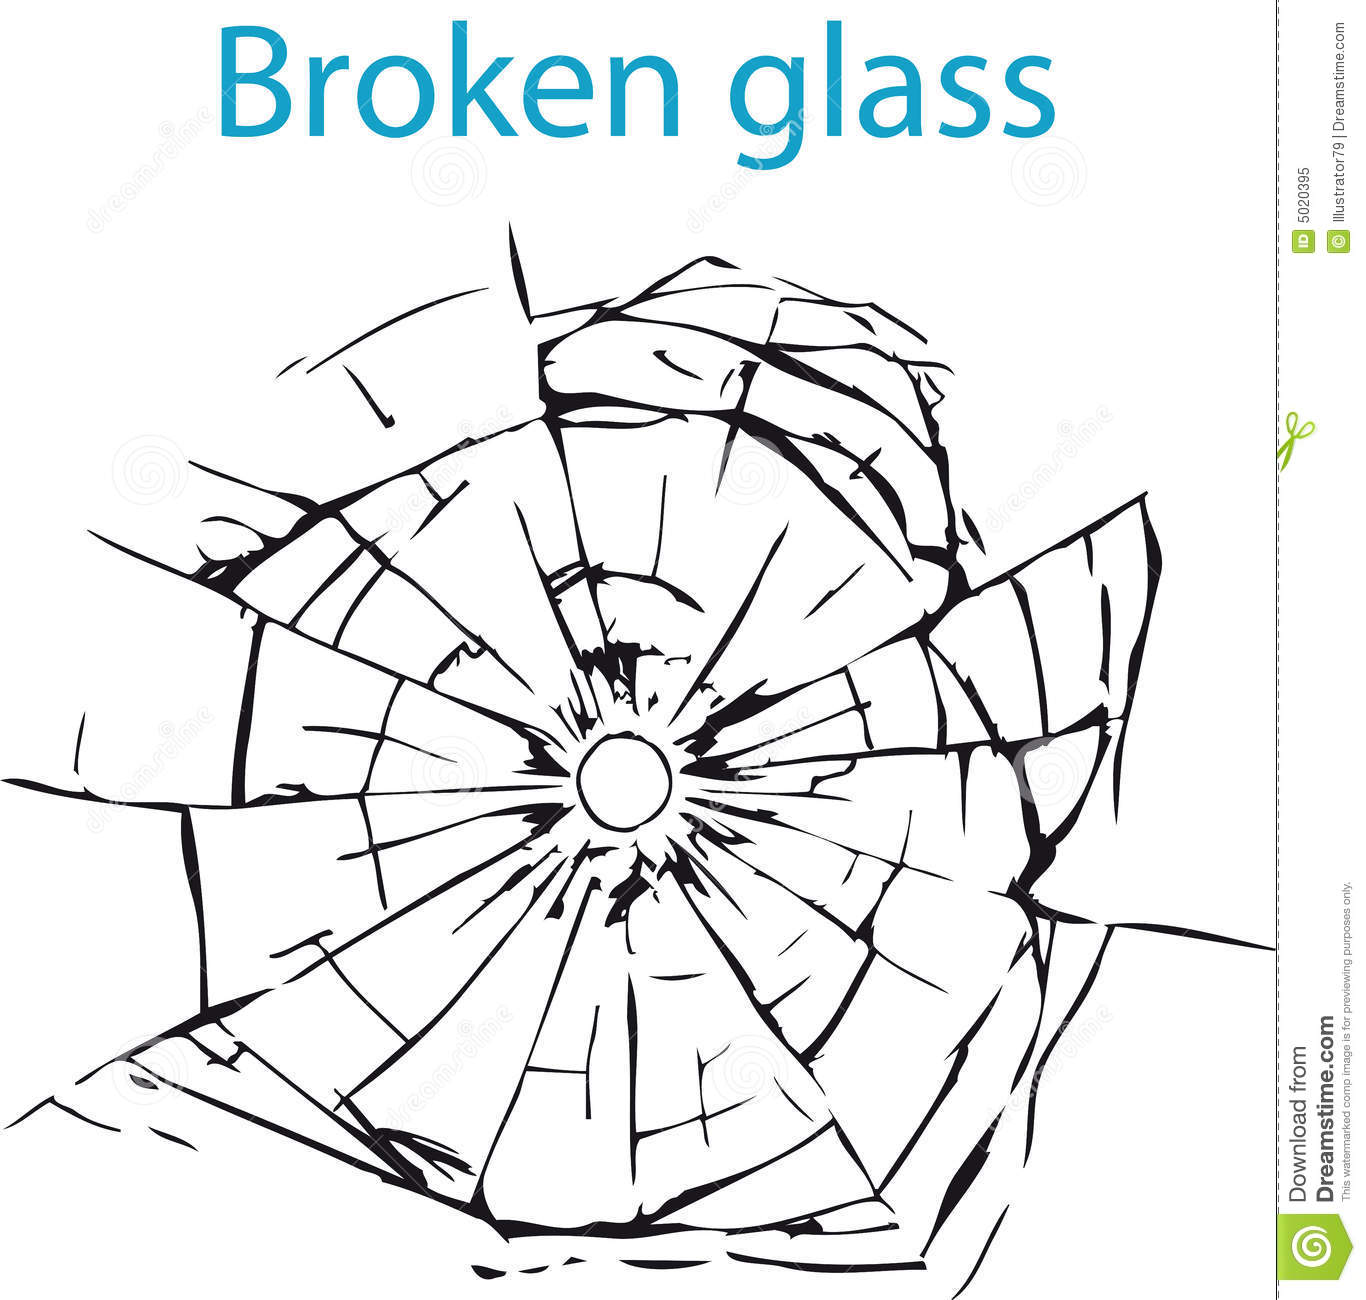 Broken Glass clipart #11, Download drawings